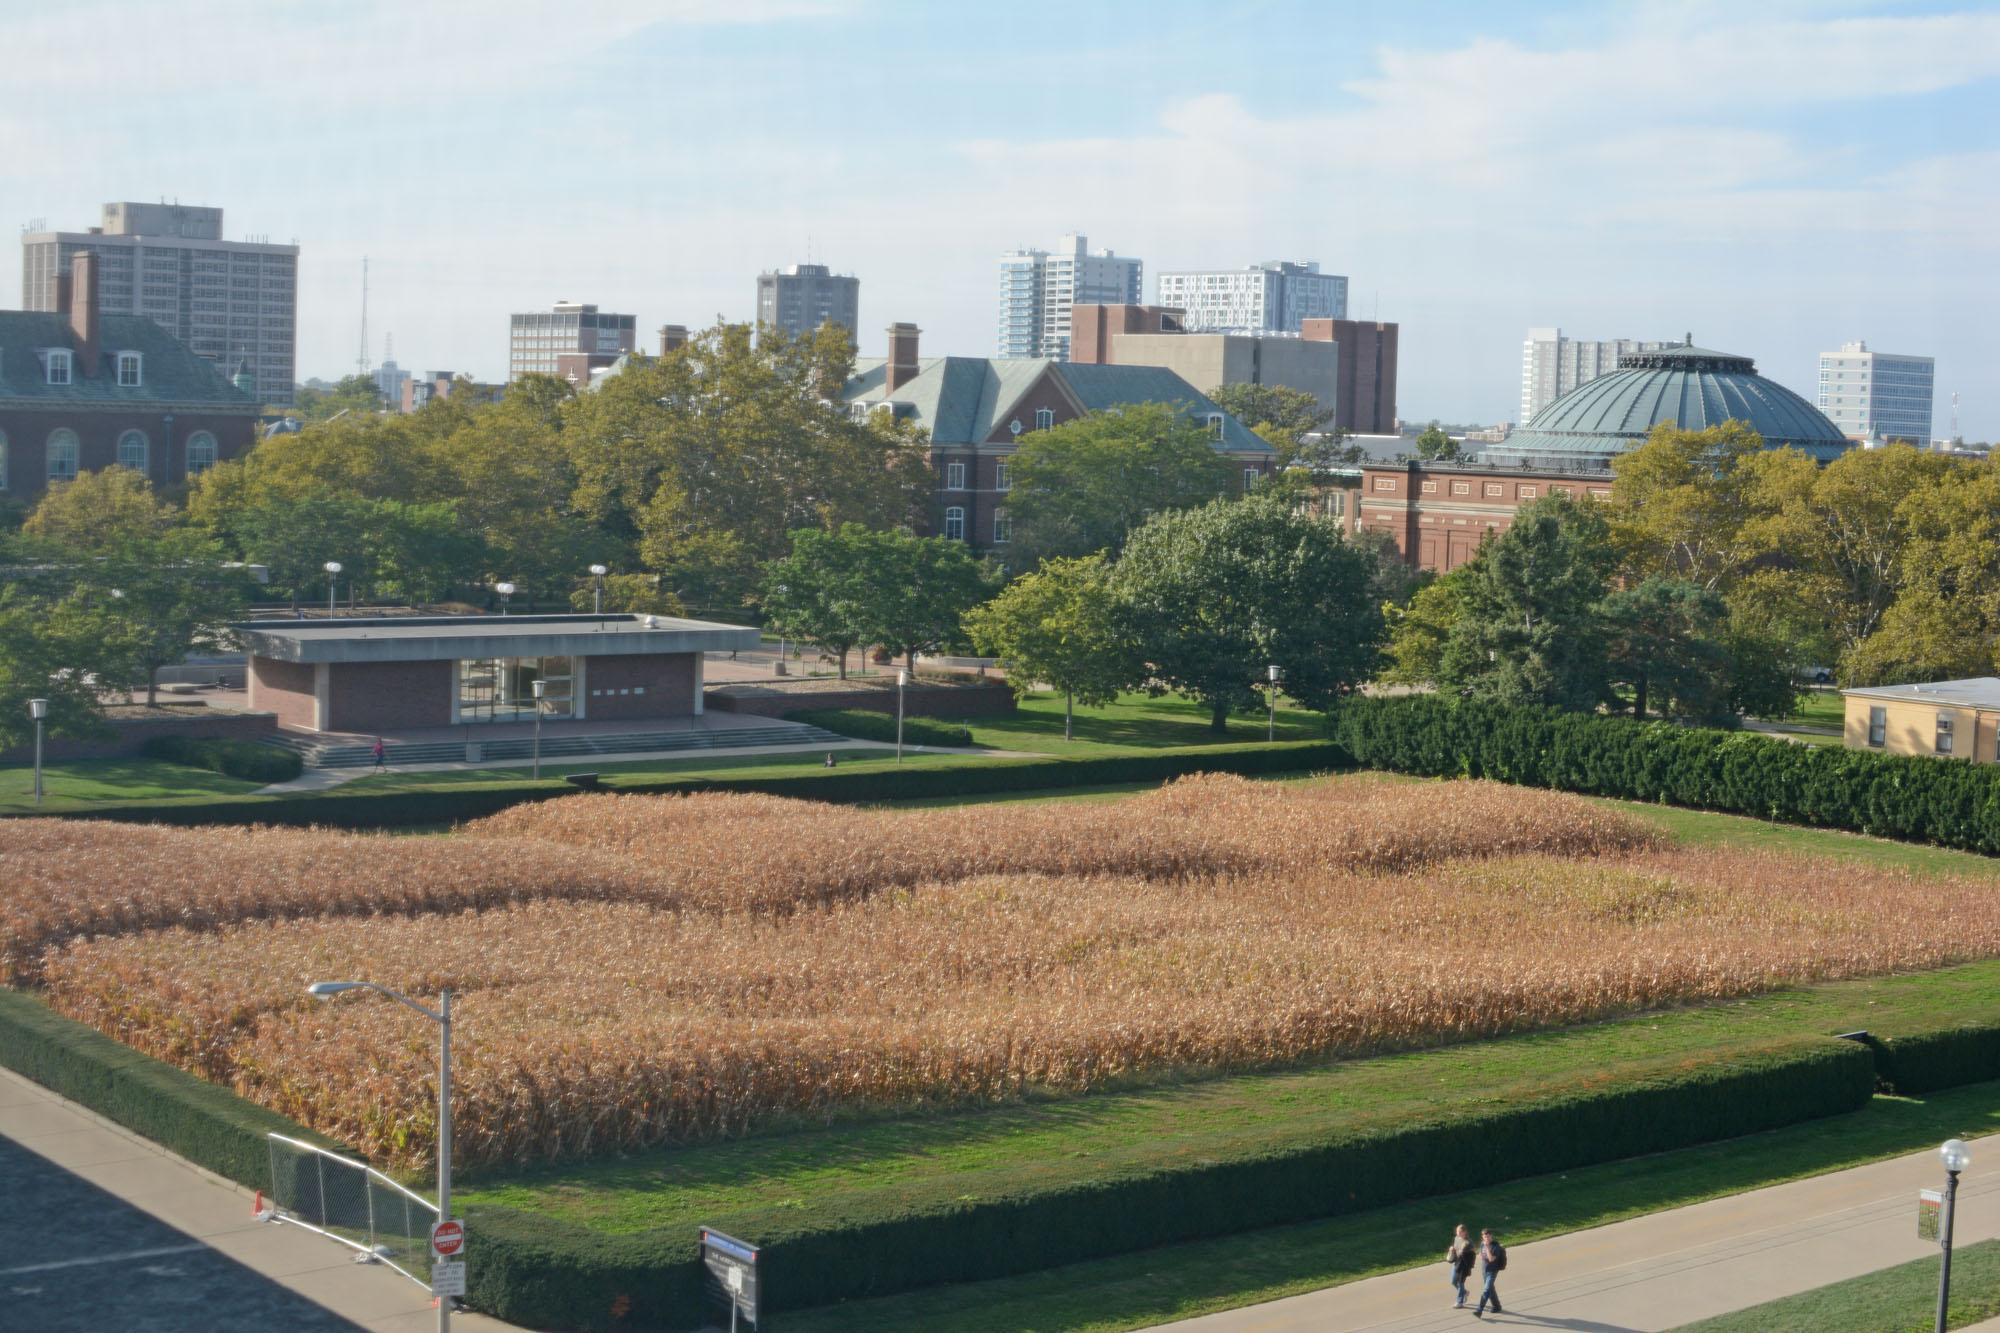 The Morrow Plots, located next to the Undergraduate Library, are the oldest agronomic experiment fields in the United States and include the longest-term continuous corn plot in the world.